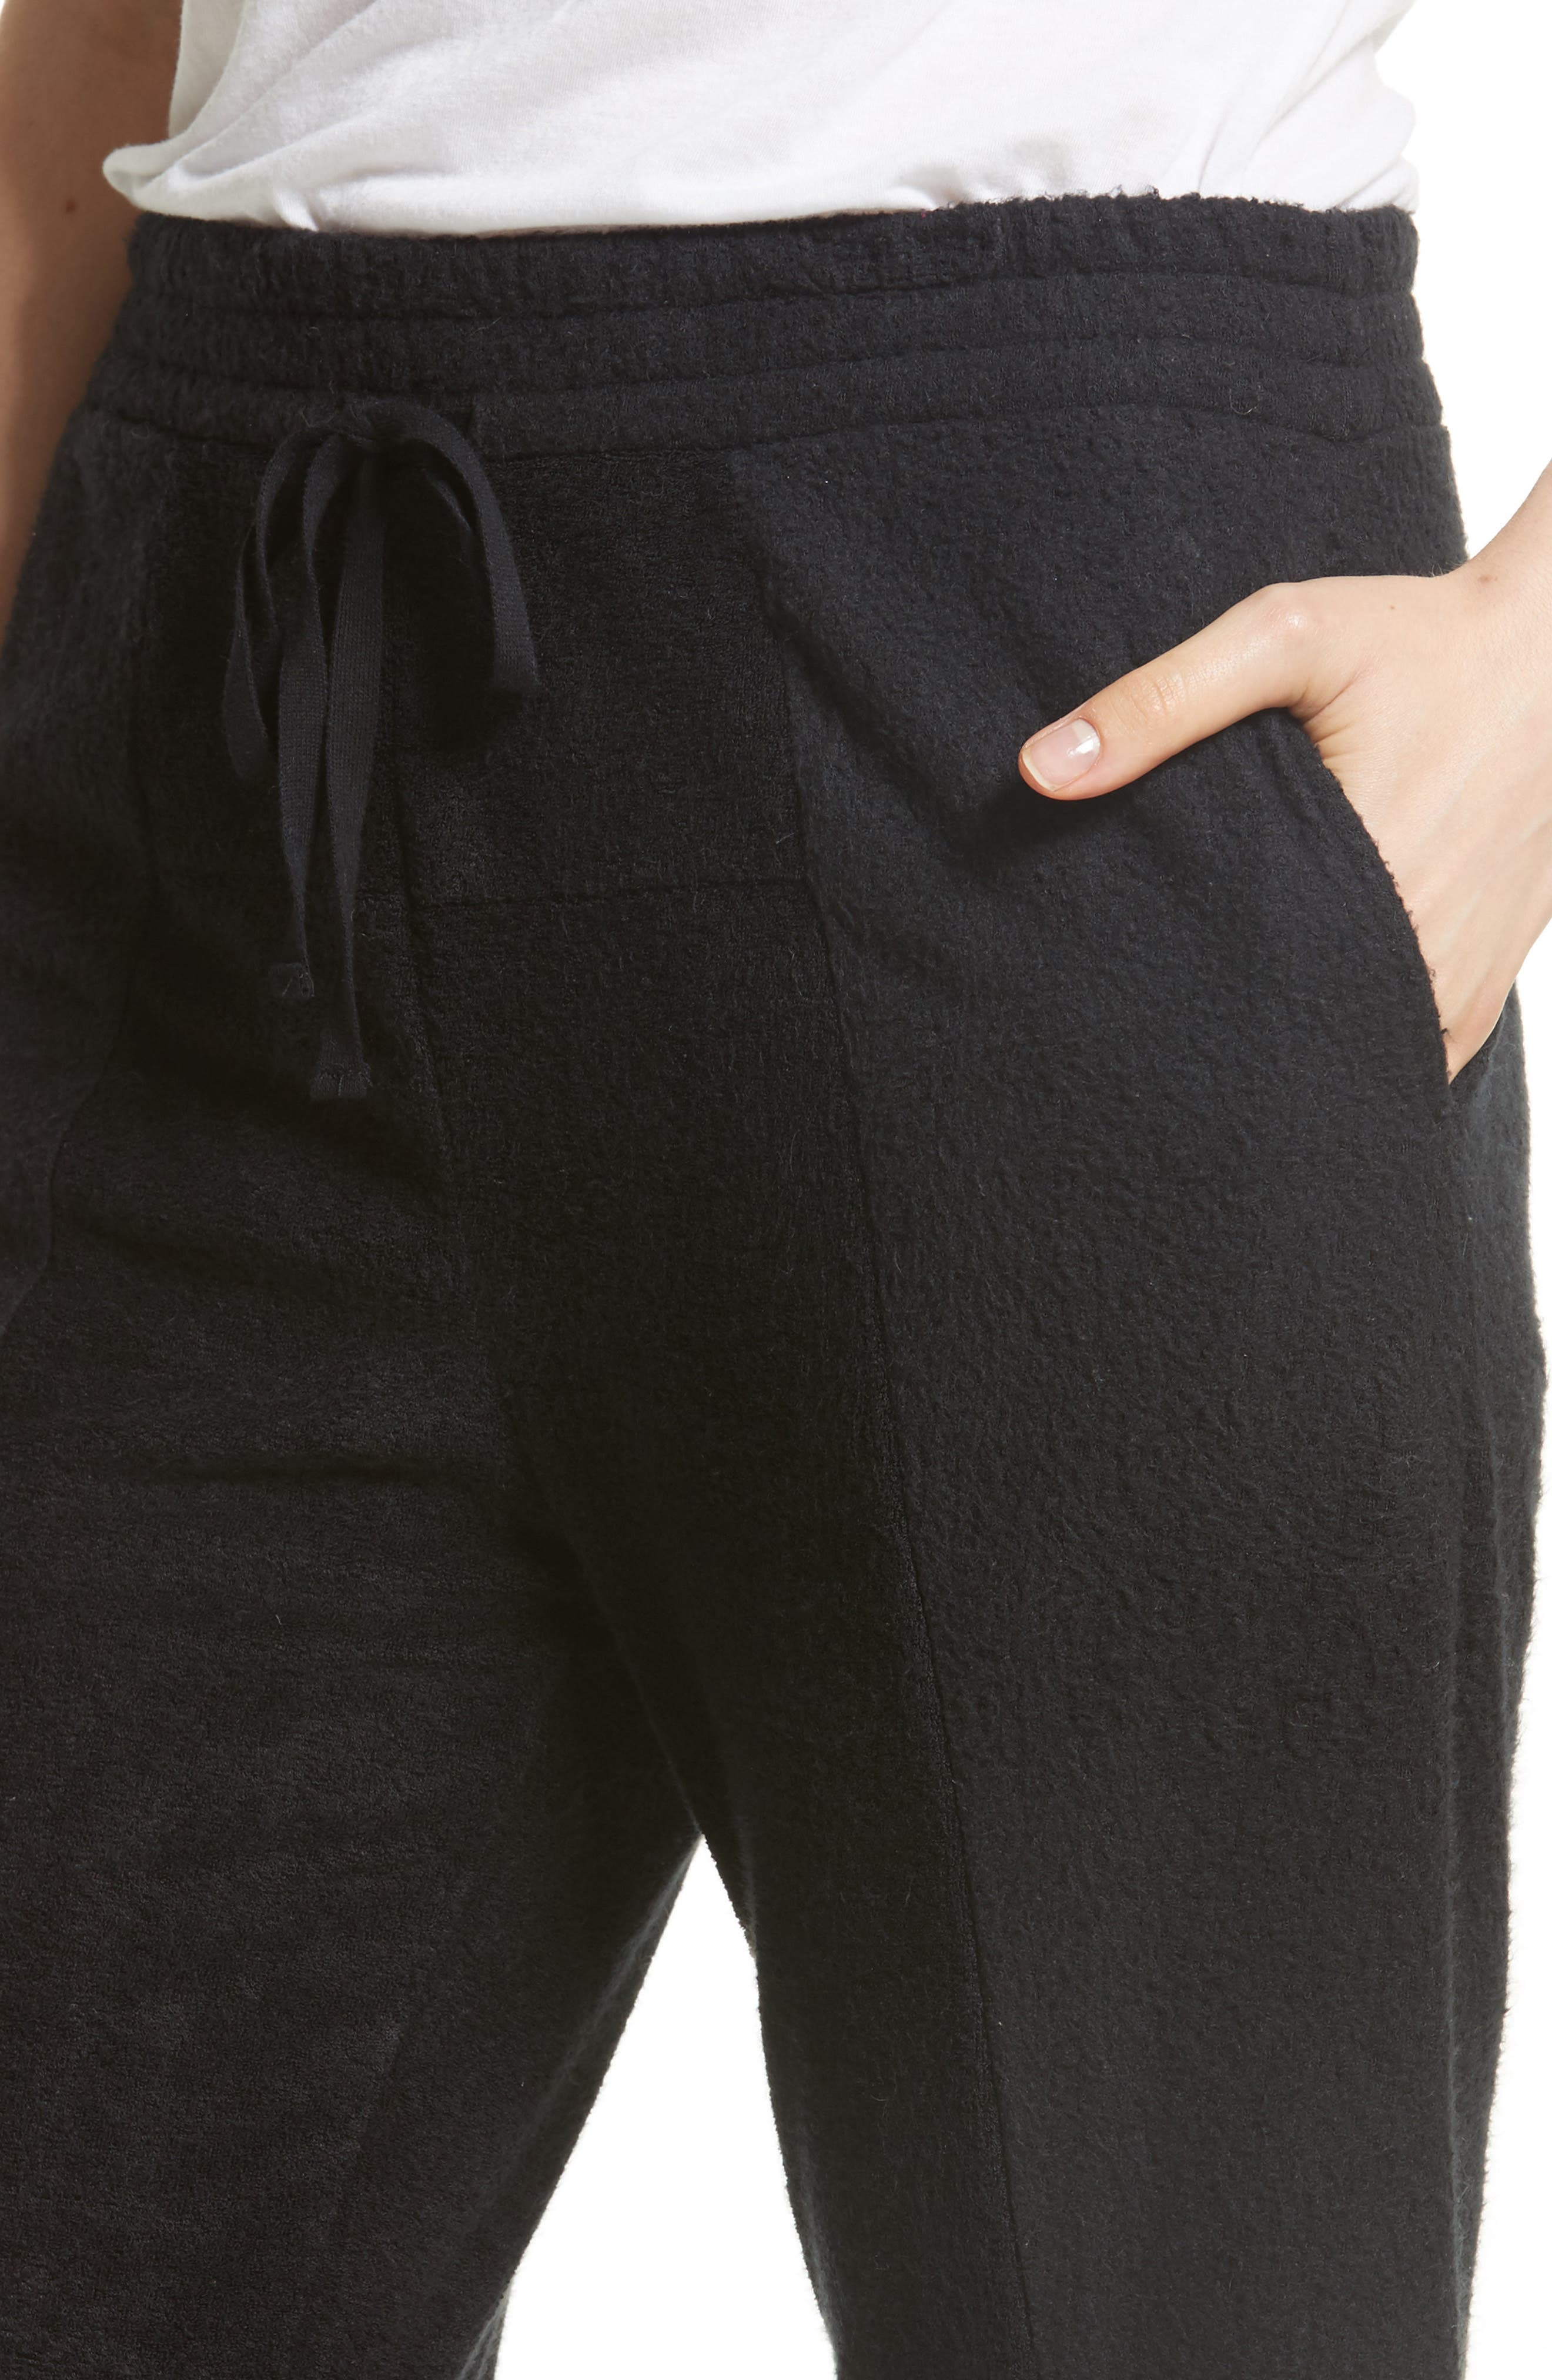 All Day All Night Jogger Pants,                             Alternate thumbnail 4, color,                             001